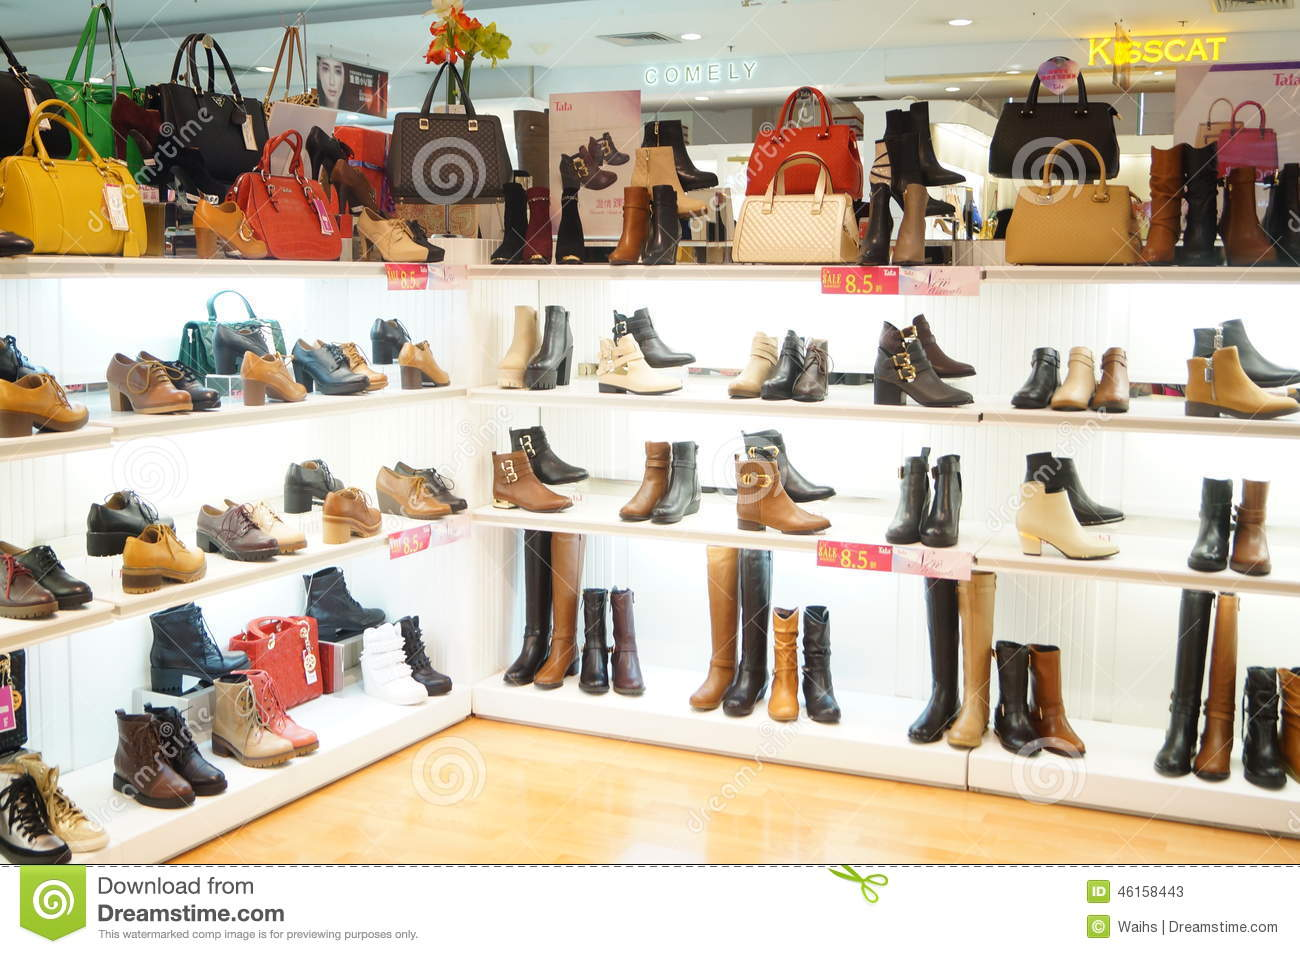 Shop the latest trends in women's shoes online at DSW, where we carry a wide range of styles and brands. Use the filters to shop for women's boots, sneakers, sandals, heels, mules, flats, and more.